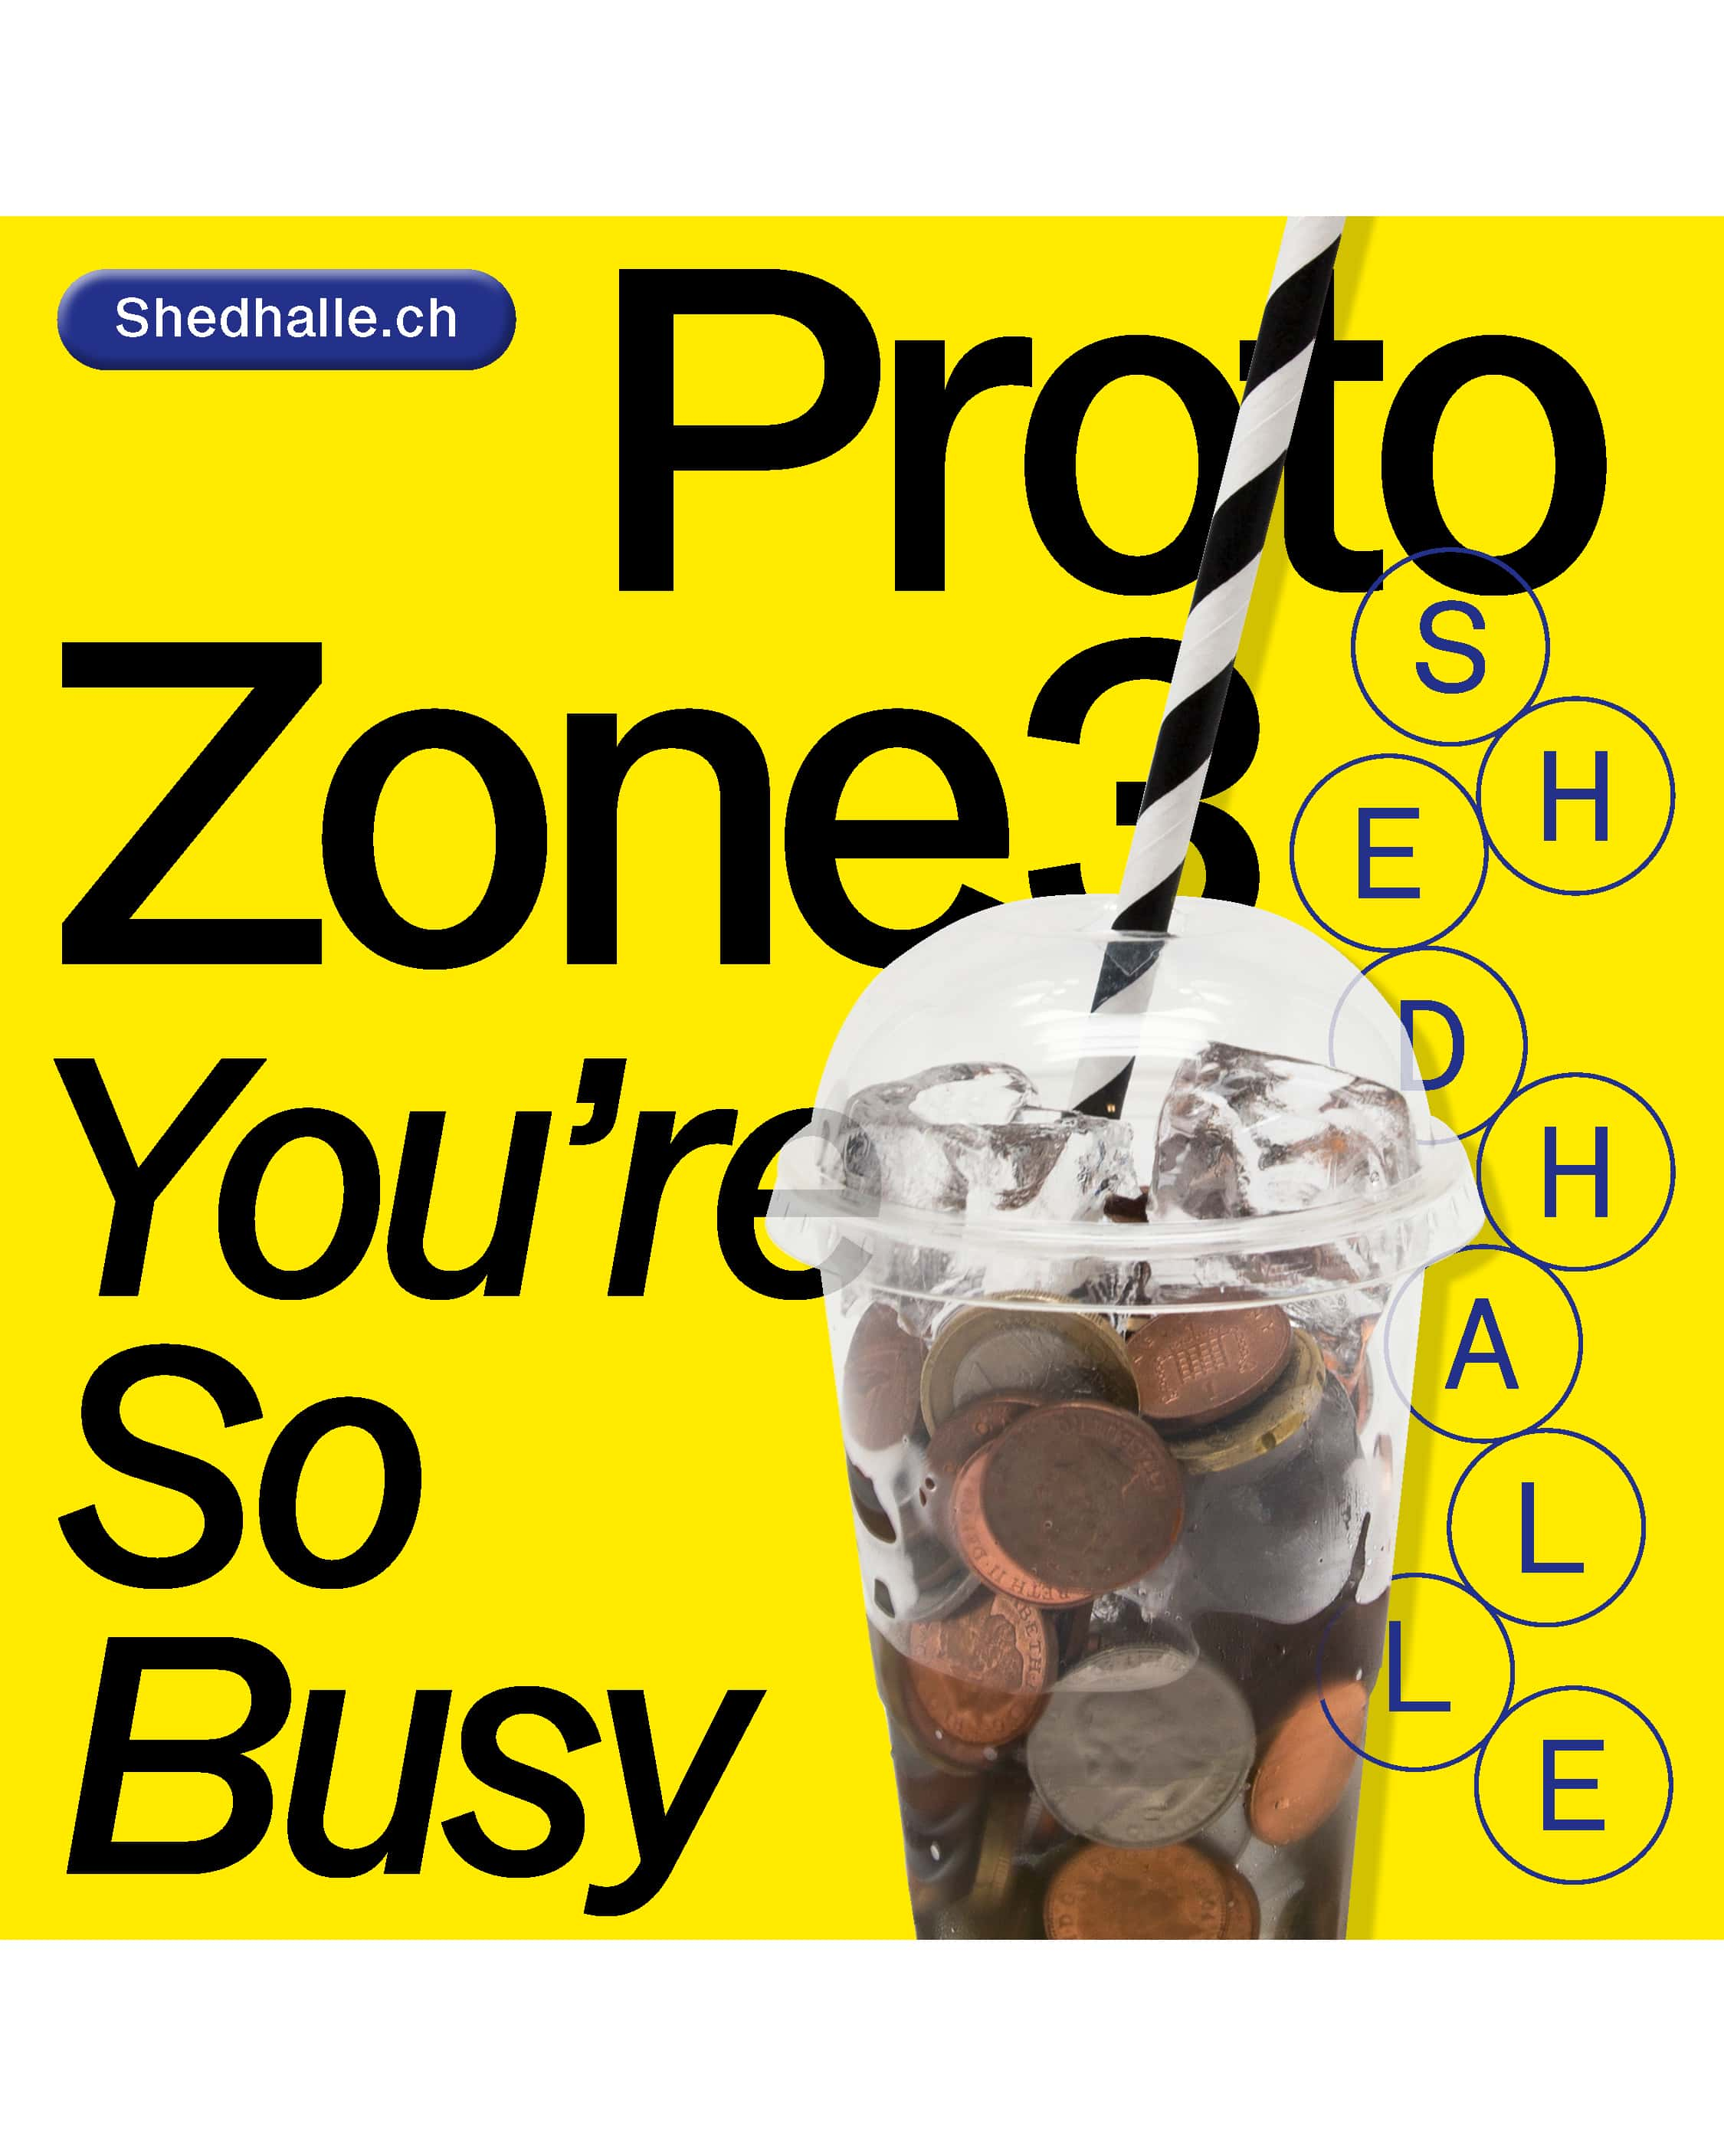 Shedhalle – Protozone3 You're So Busy